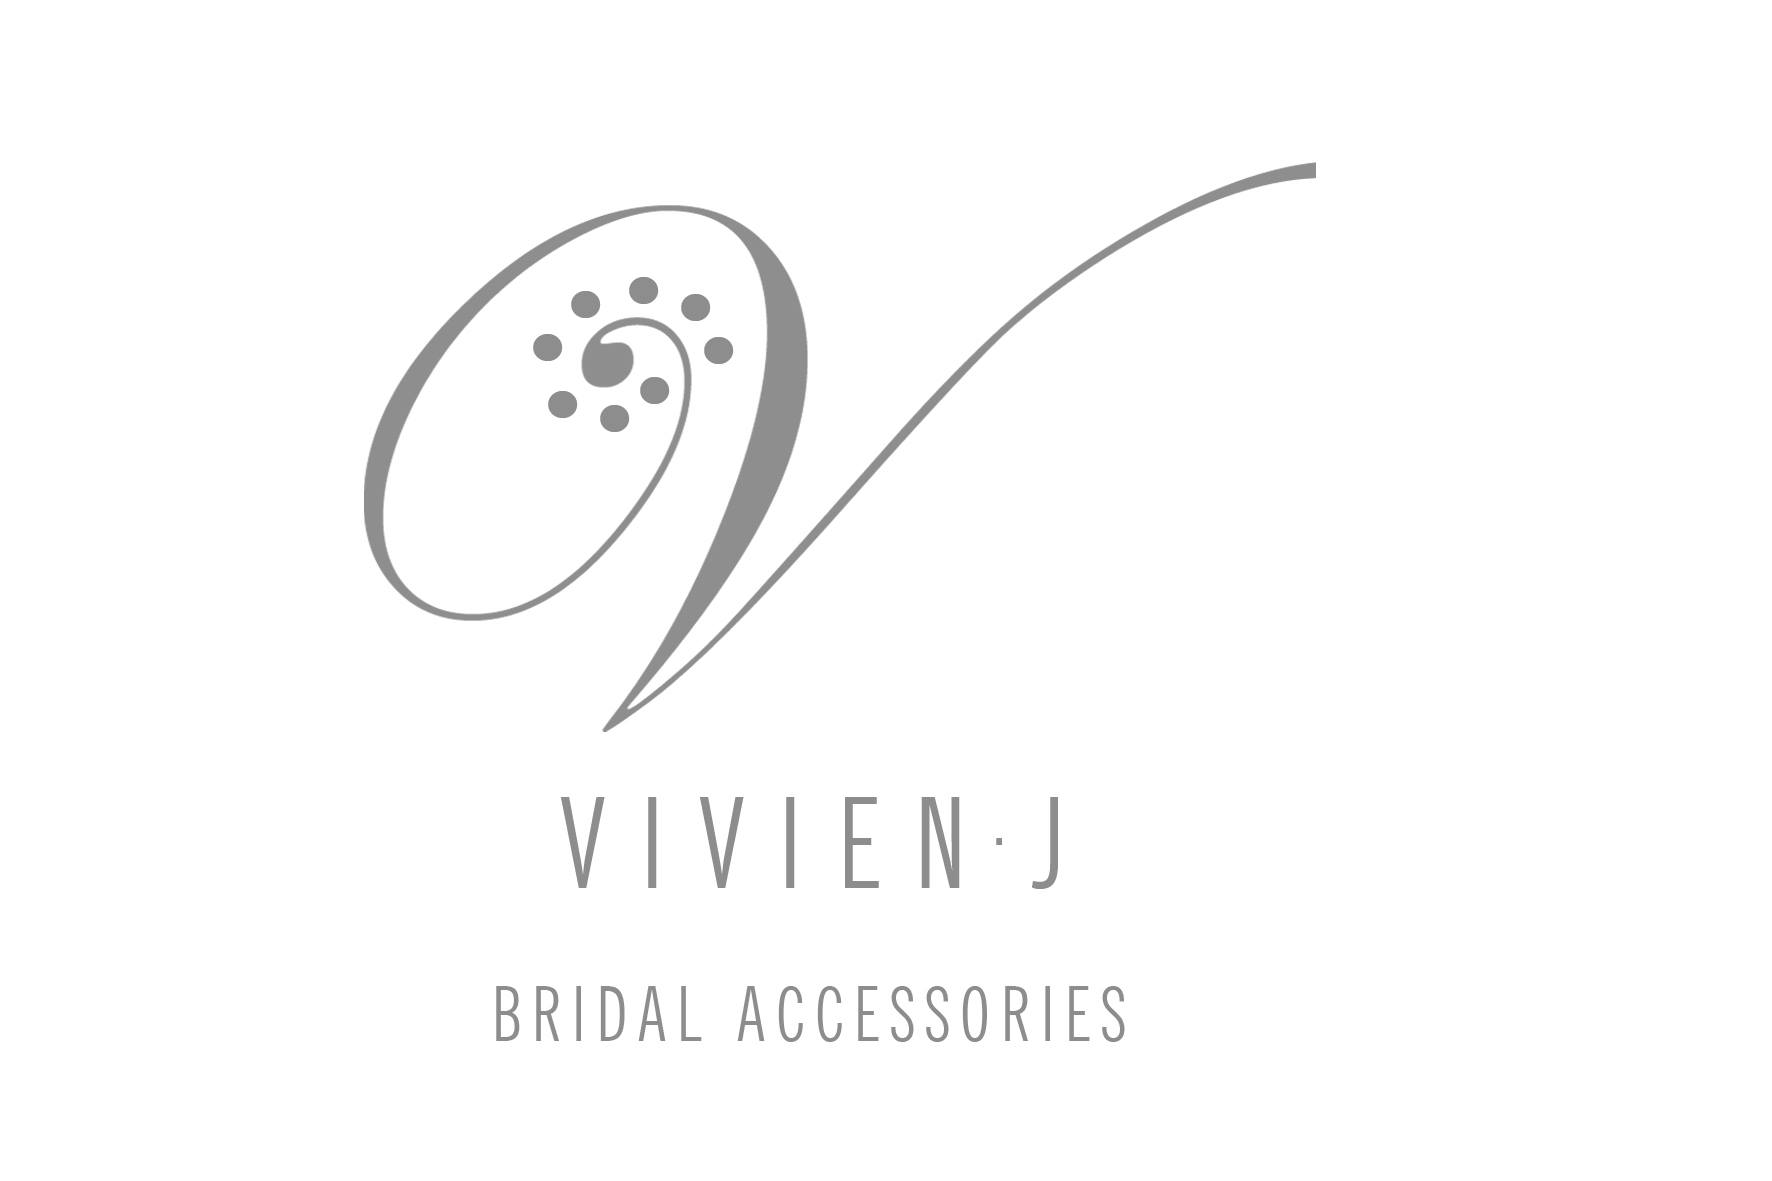 Vivien J Bridal Accessories.jpg